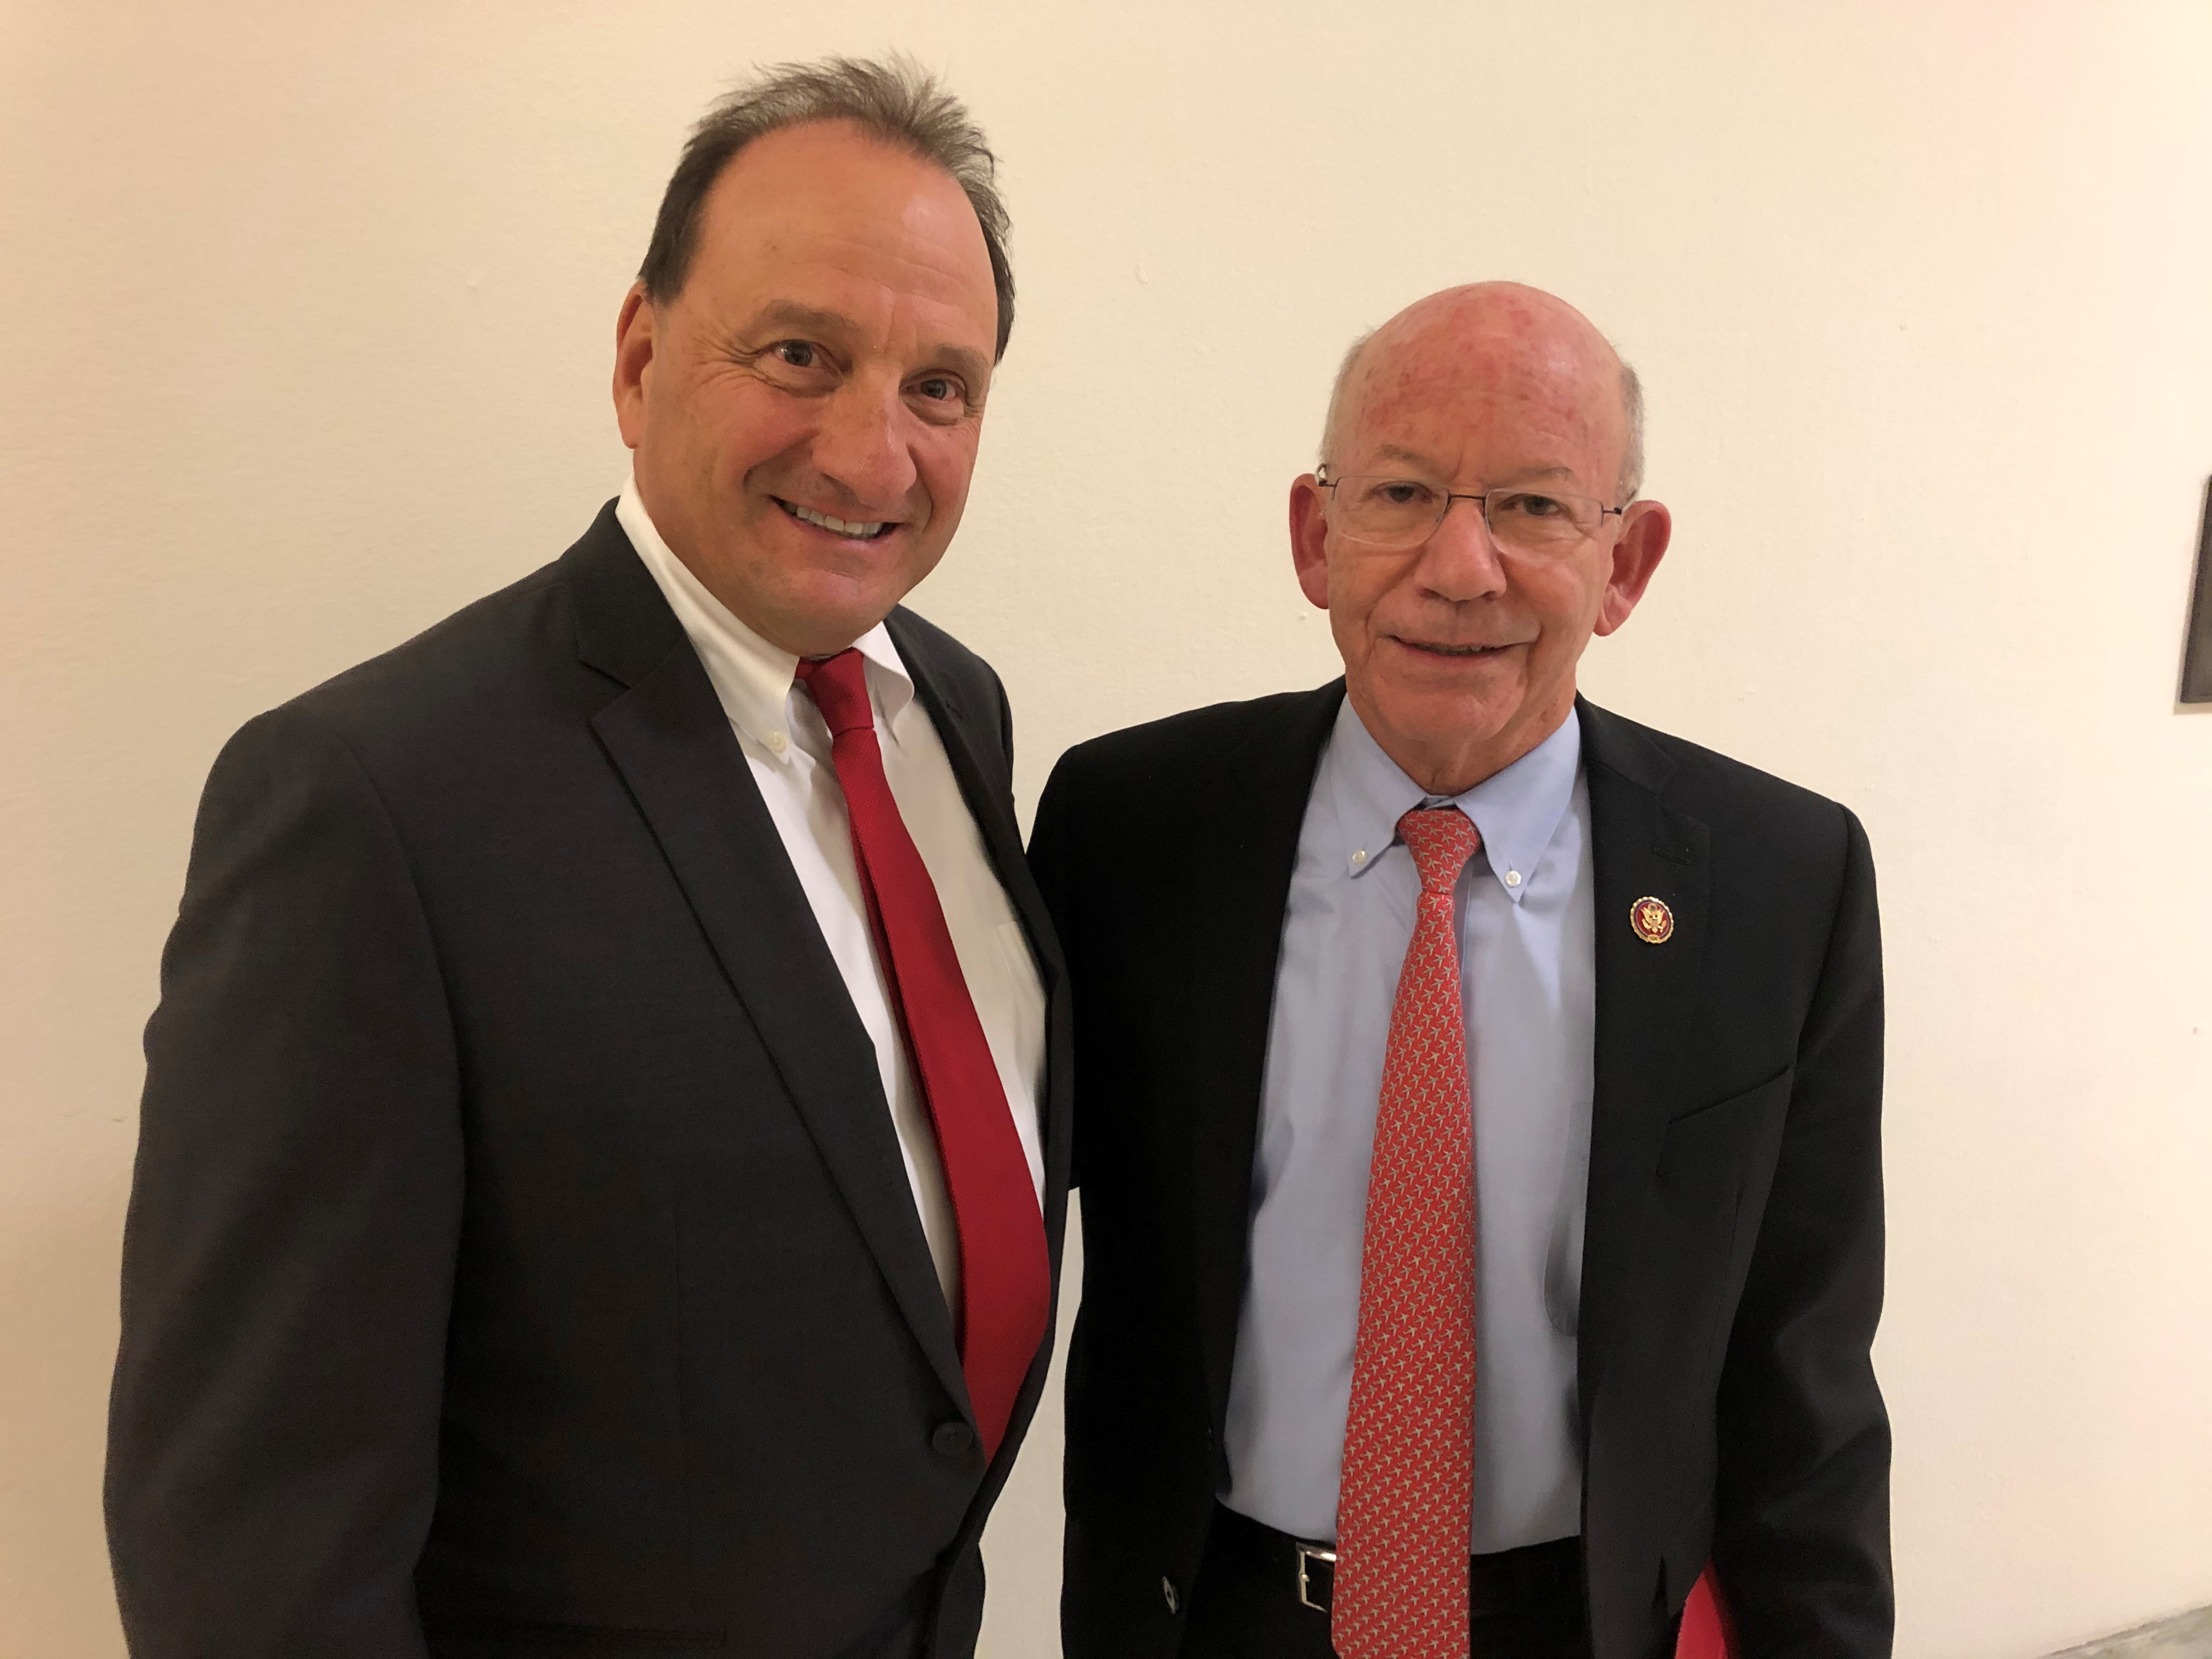 Arrighi with DeFazio